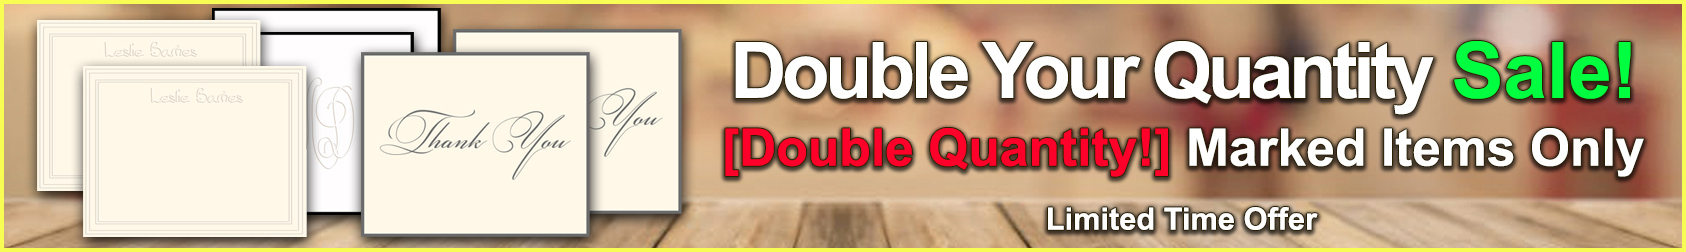 double-quantity-sale-category-image-2018.jpg